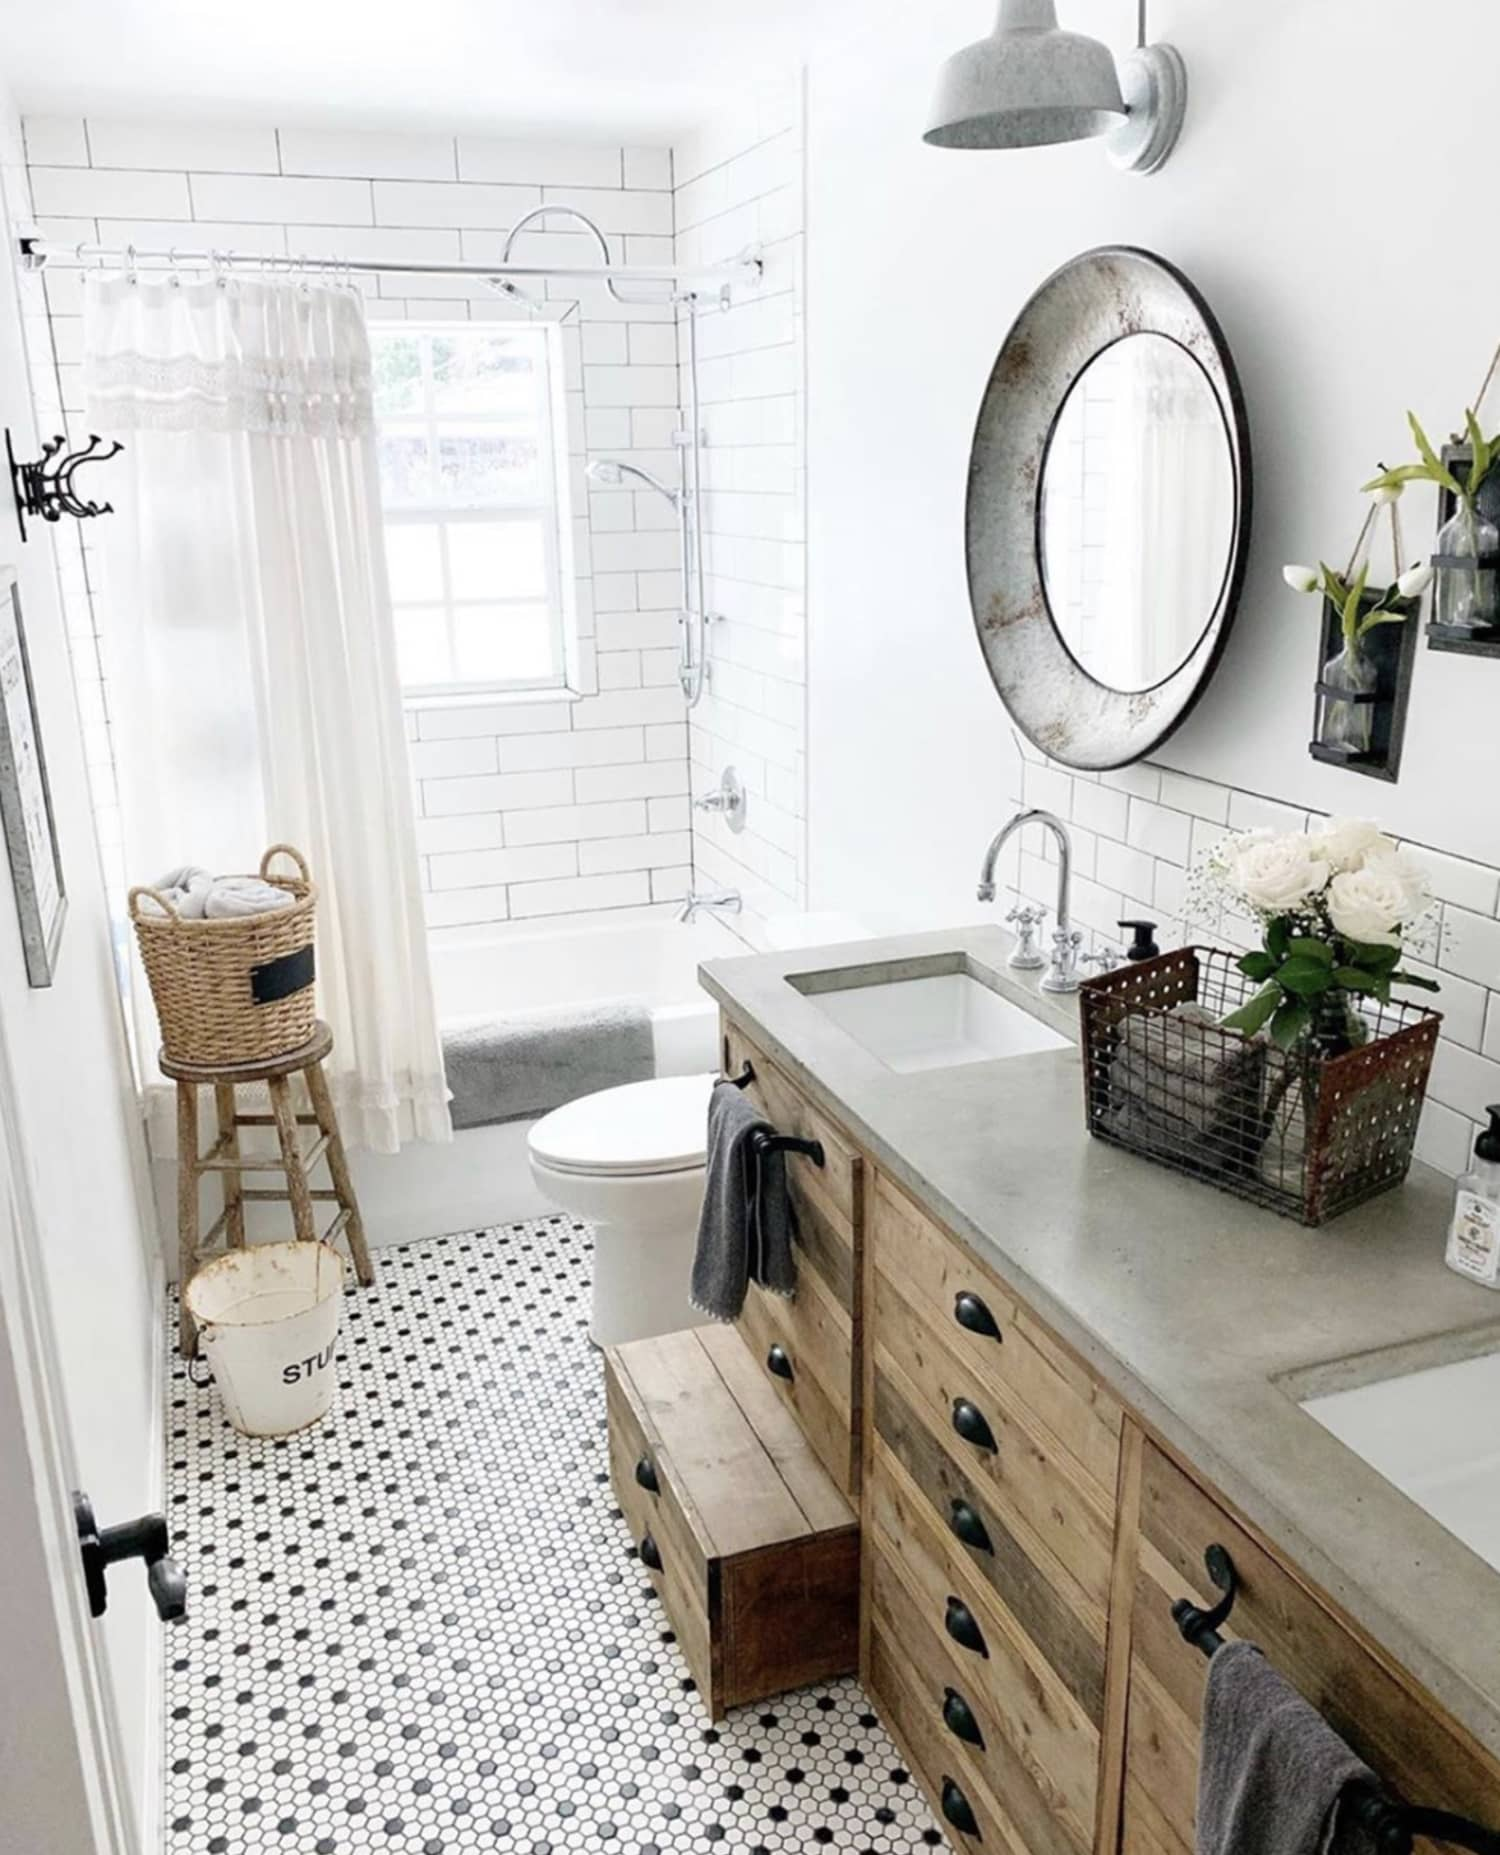 You'll Swoon Over These 20 Sweet Spaces Featuring Farmhouse Bathroom Decor